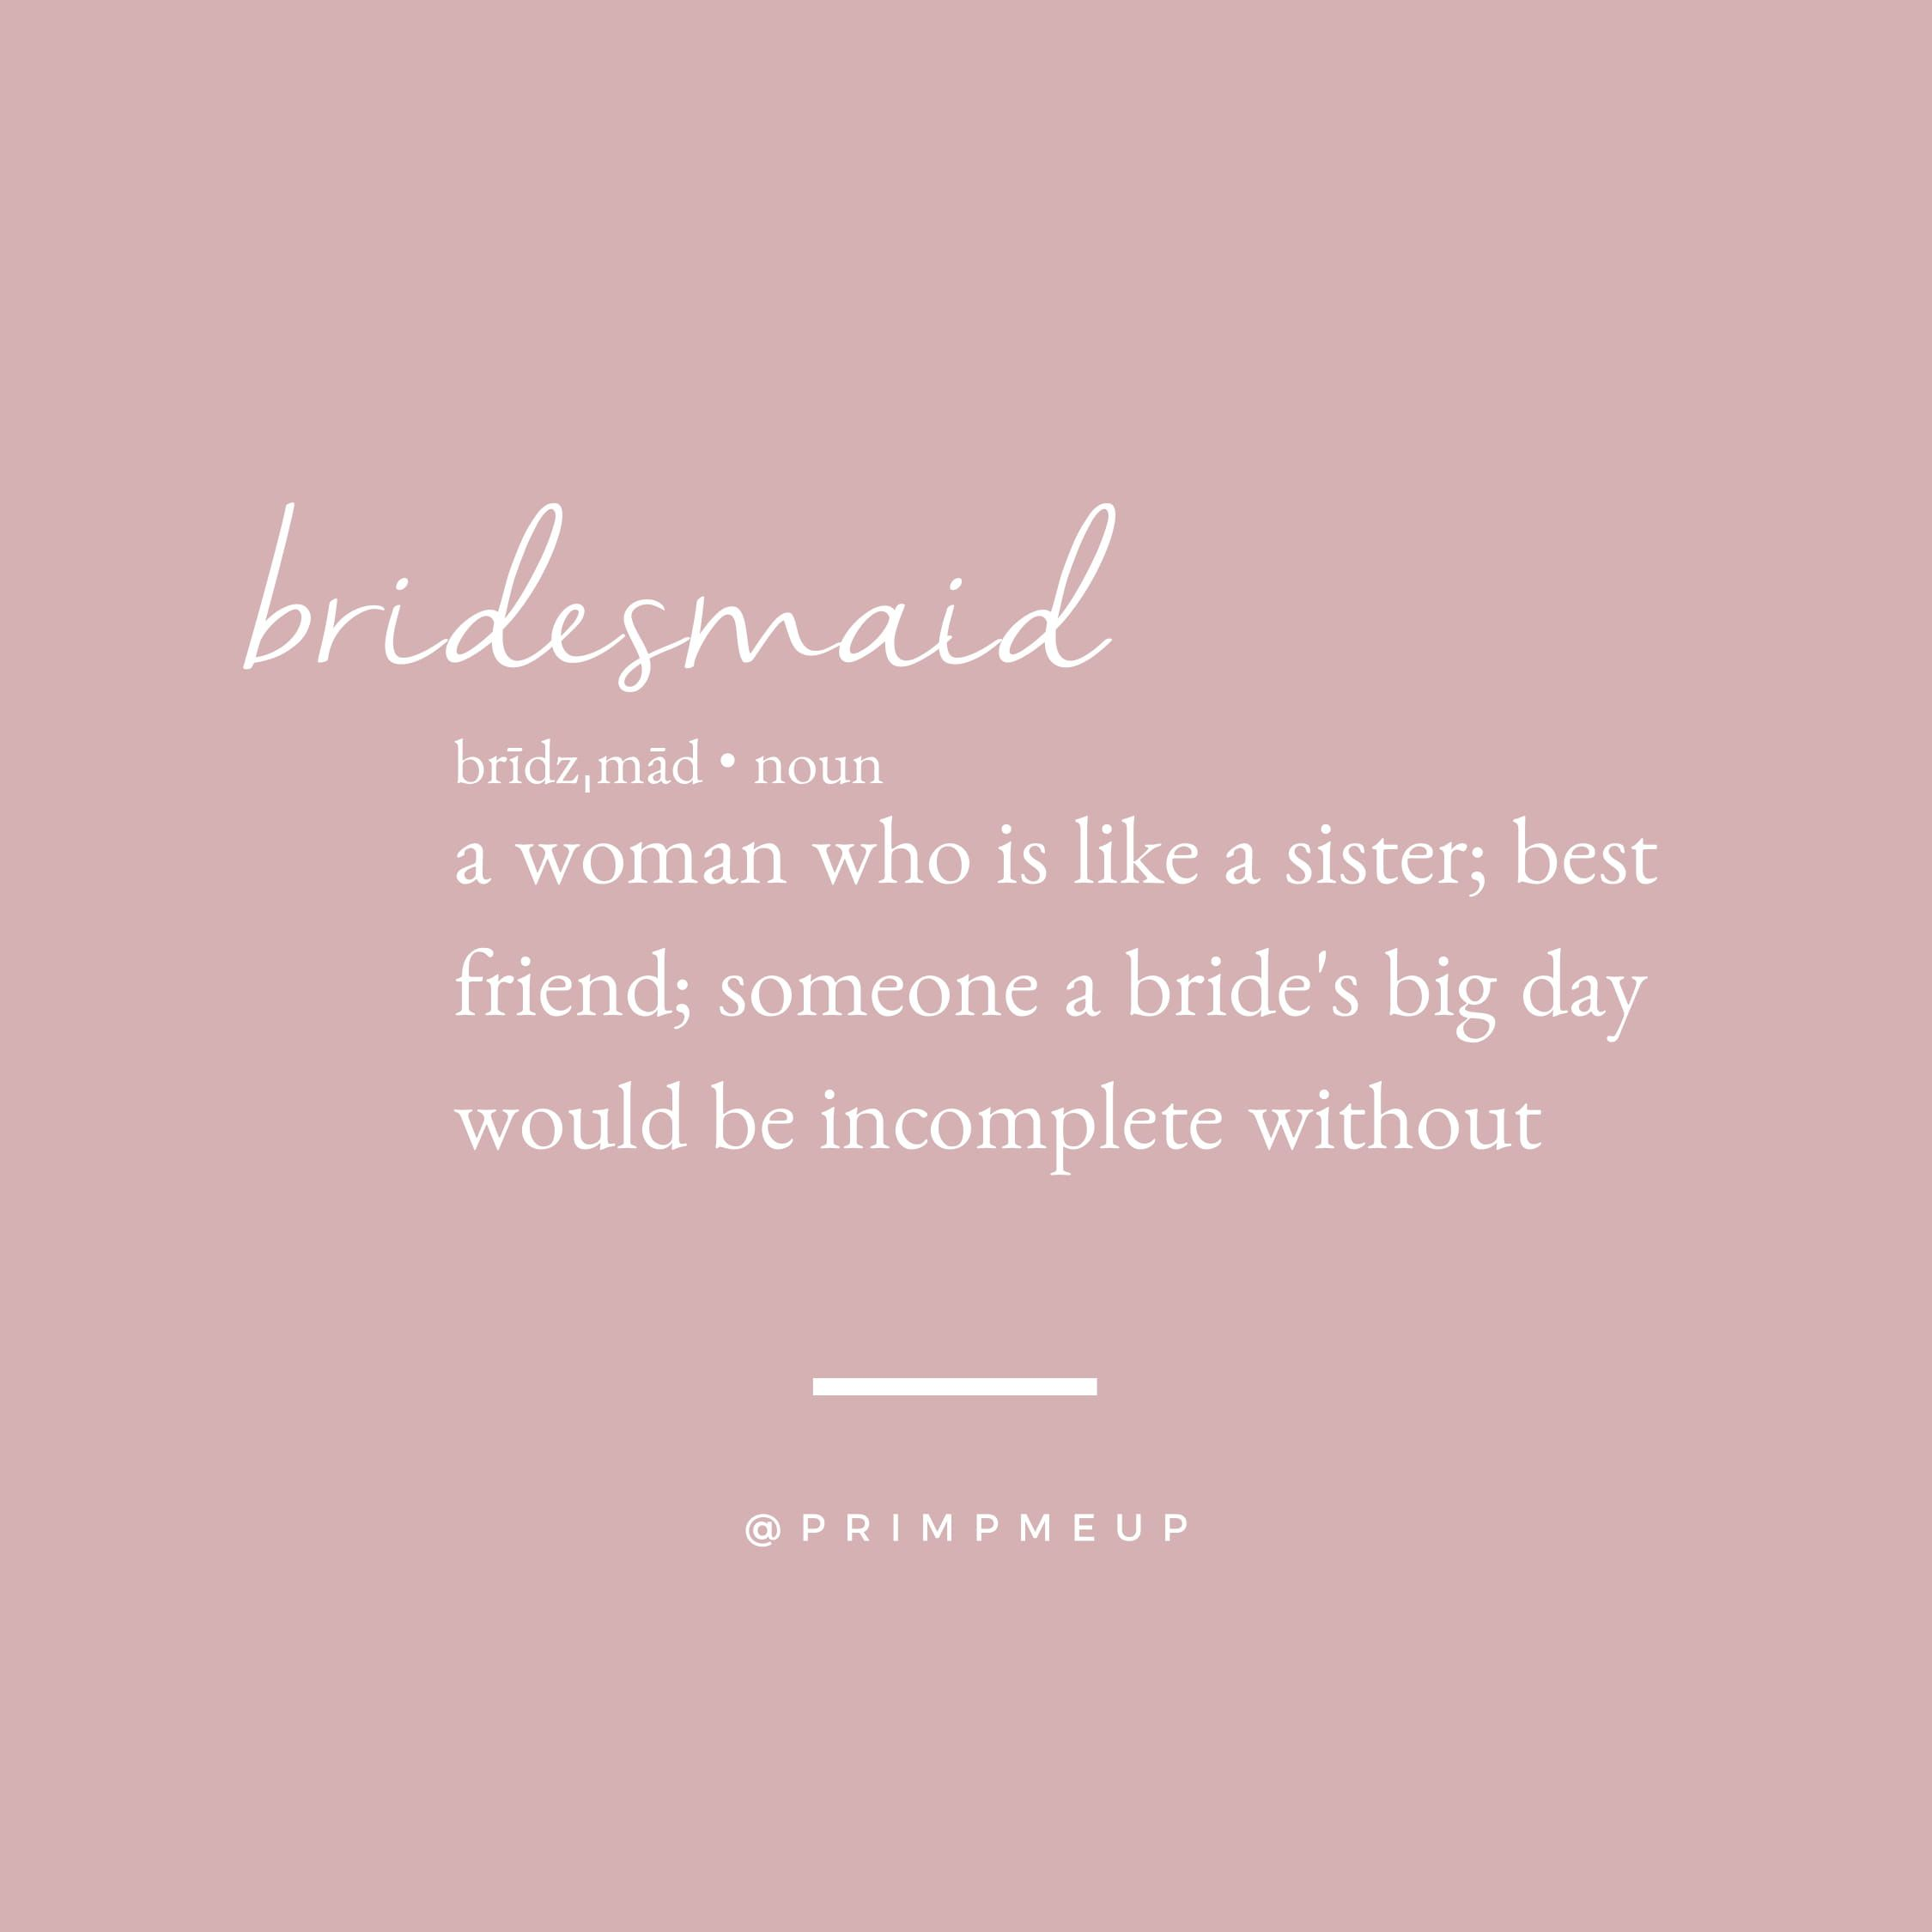 bridesmaid: a woman who is like a sister; best friend